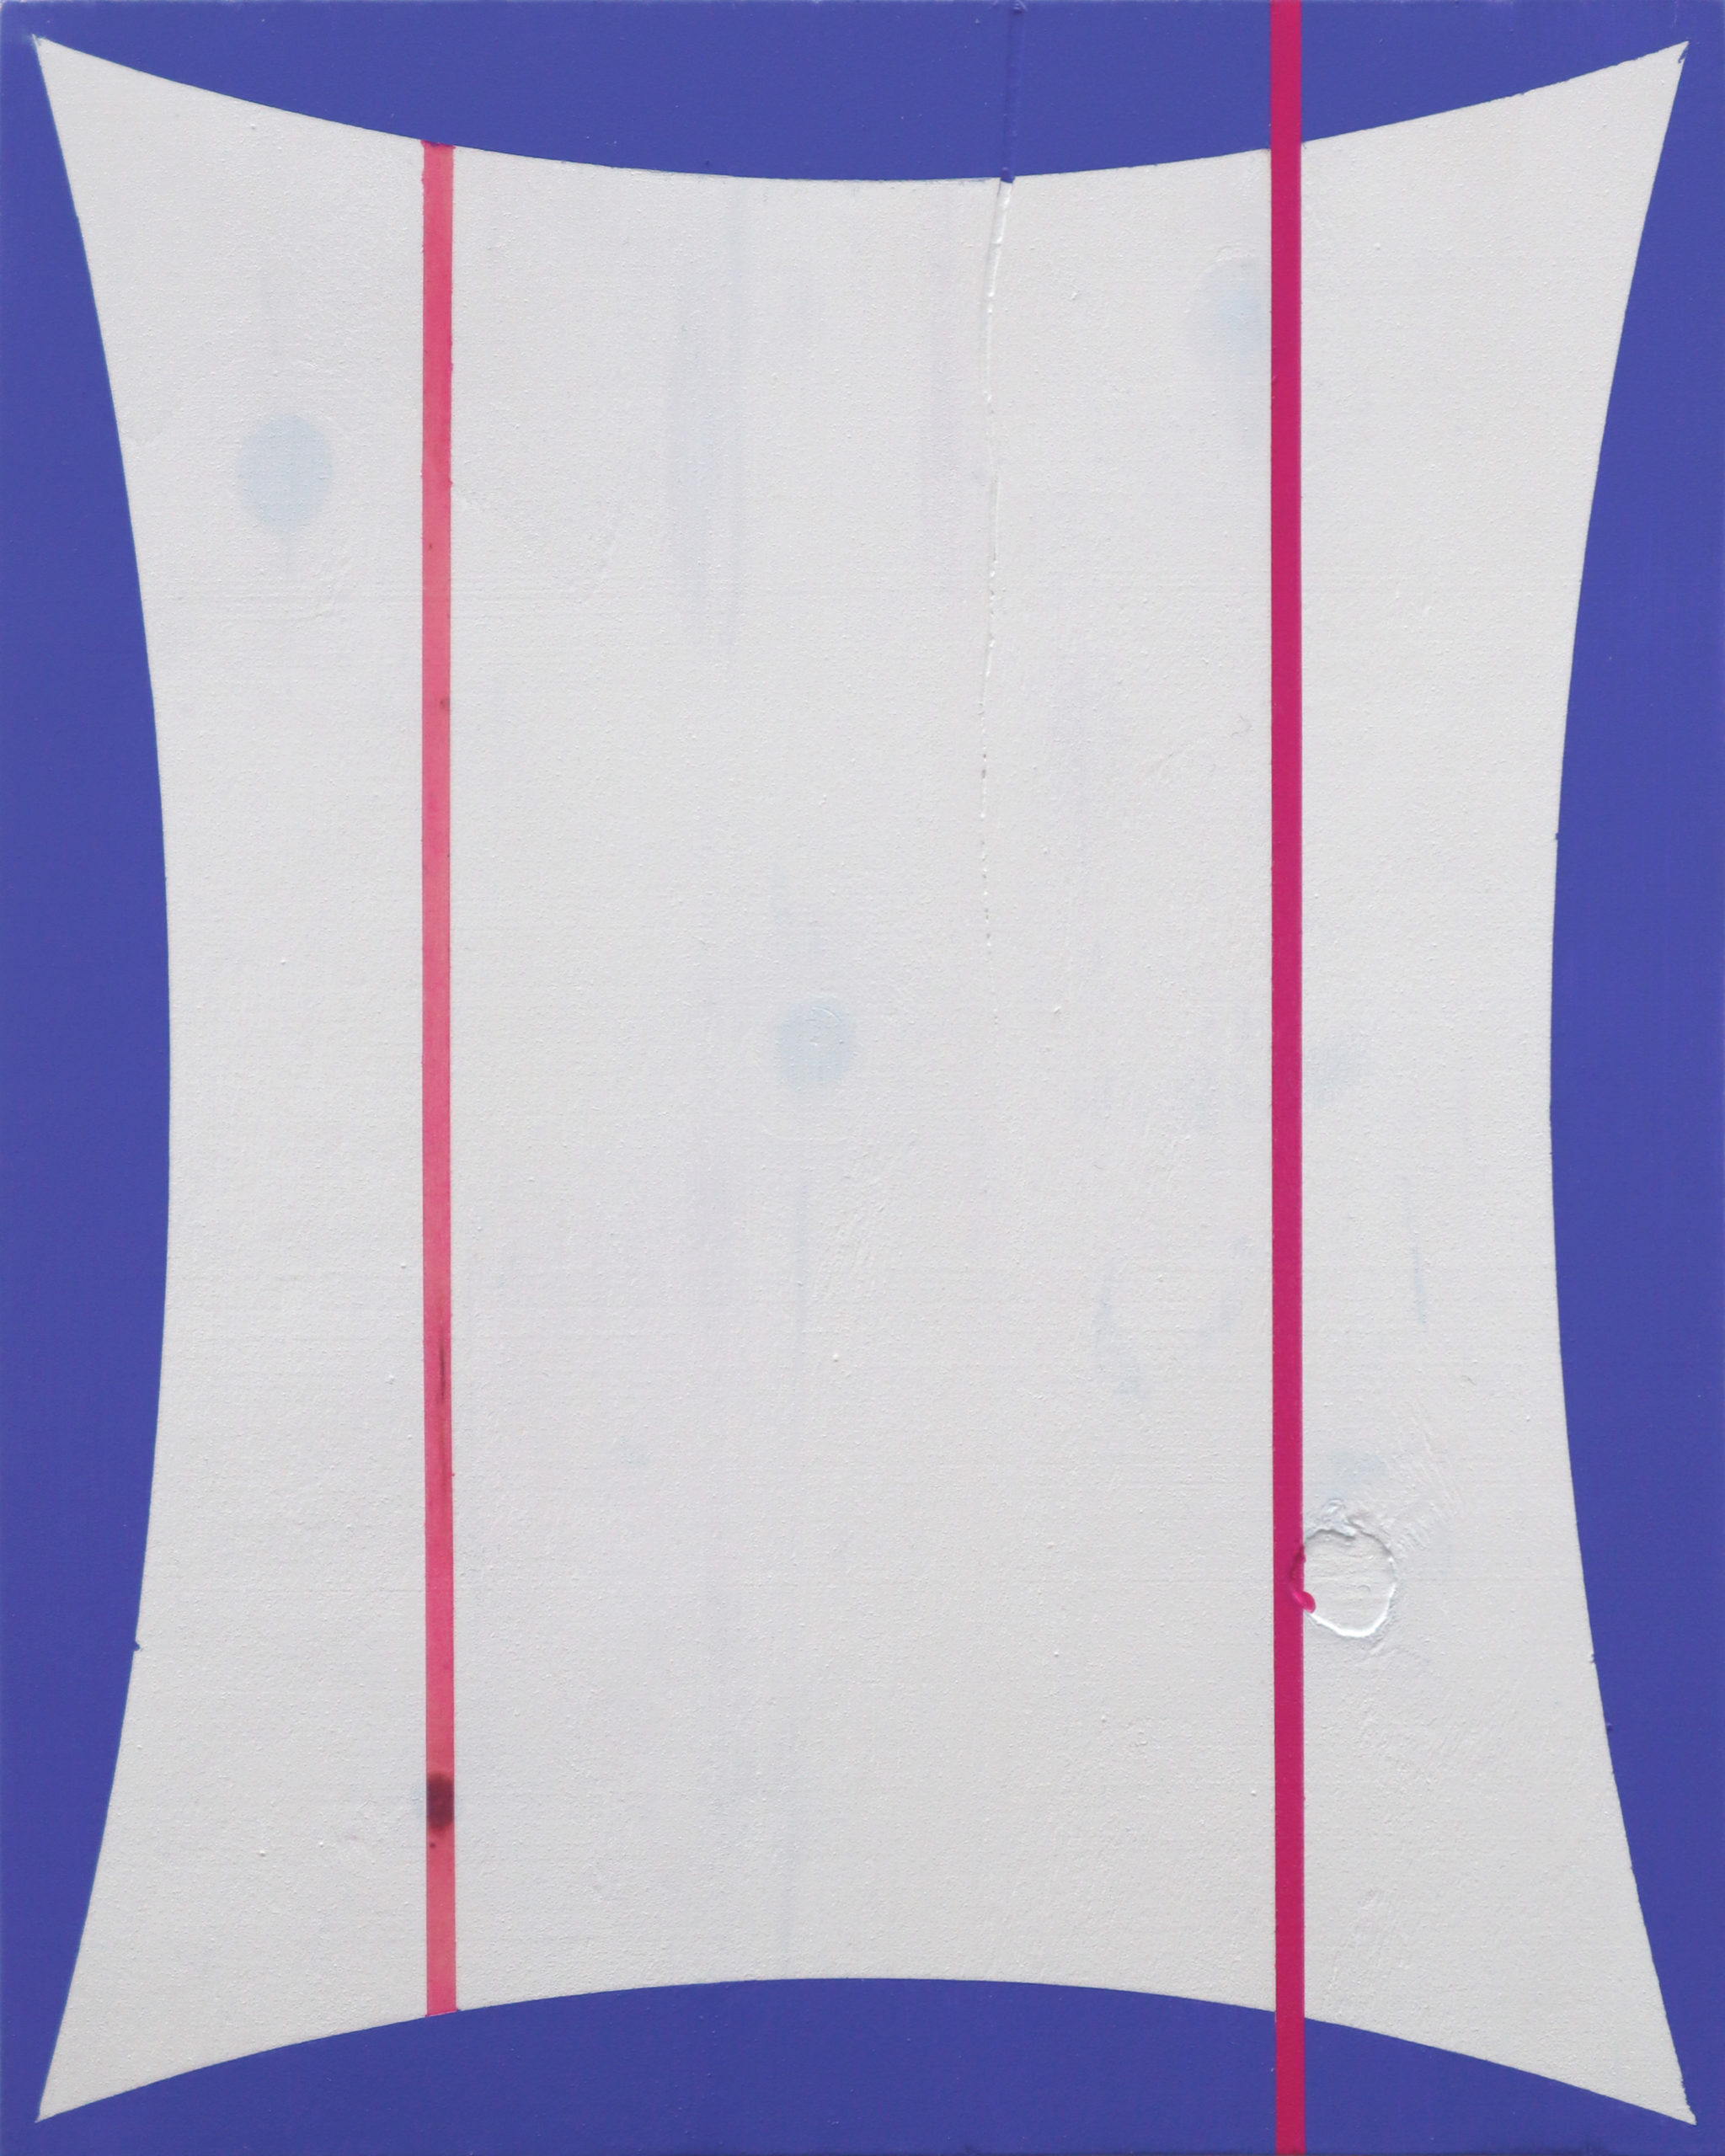 Untitled (Blue Red White)